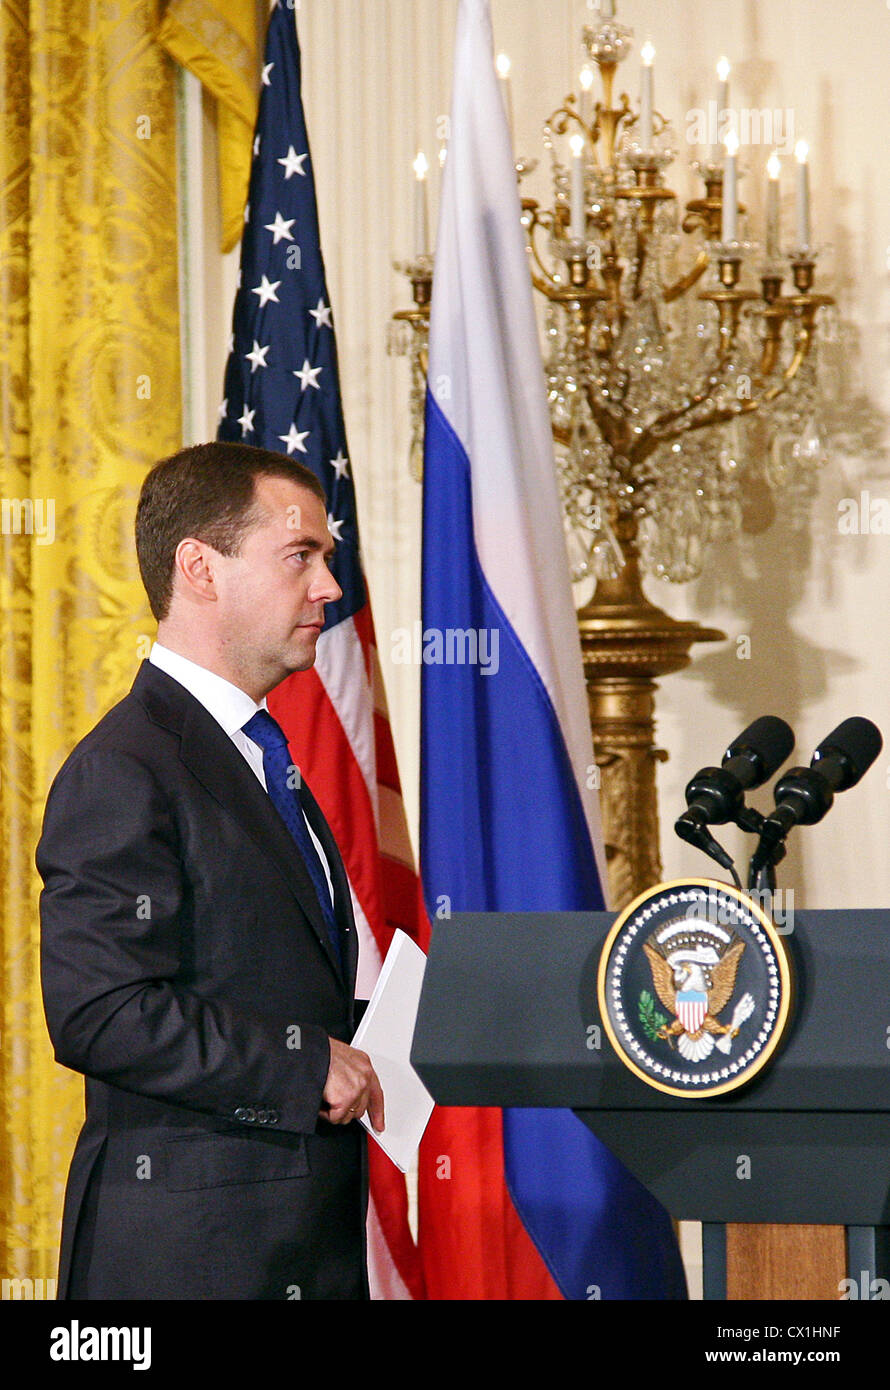 WASHINGTON, USA. JUNE 25, 2010. Russian President Dmitry Medvedev at a joint press conference with U.S. President Stock Photo